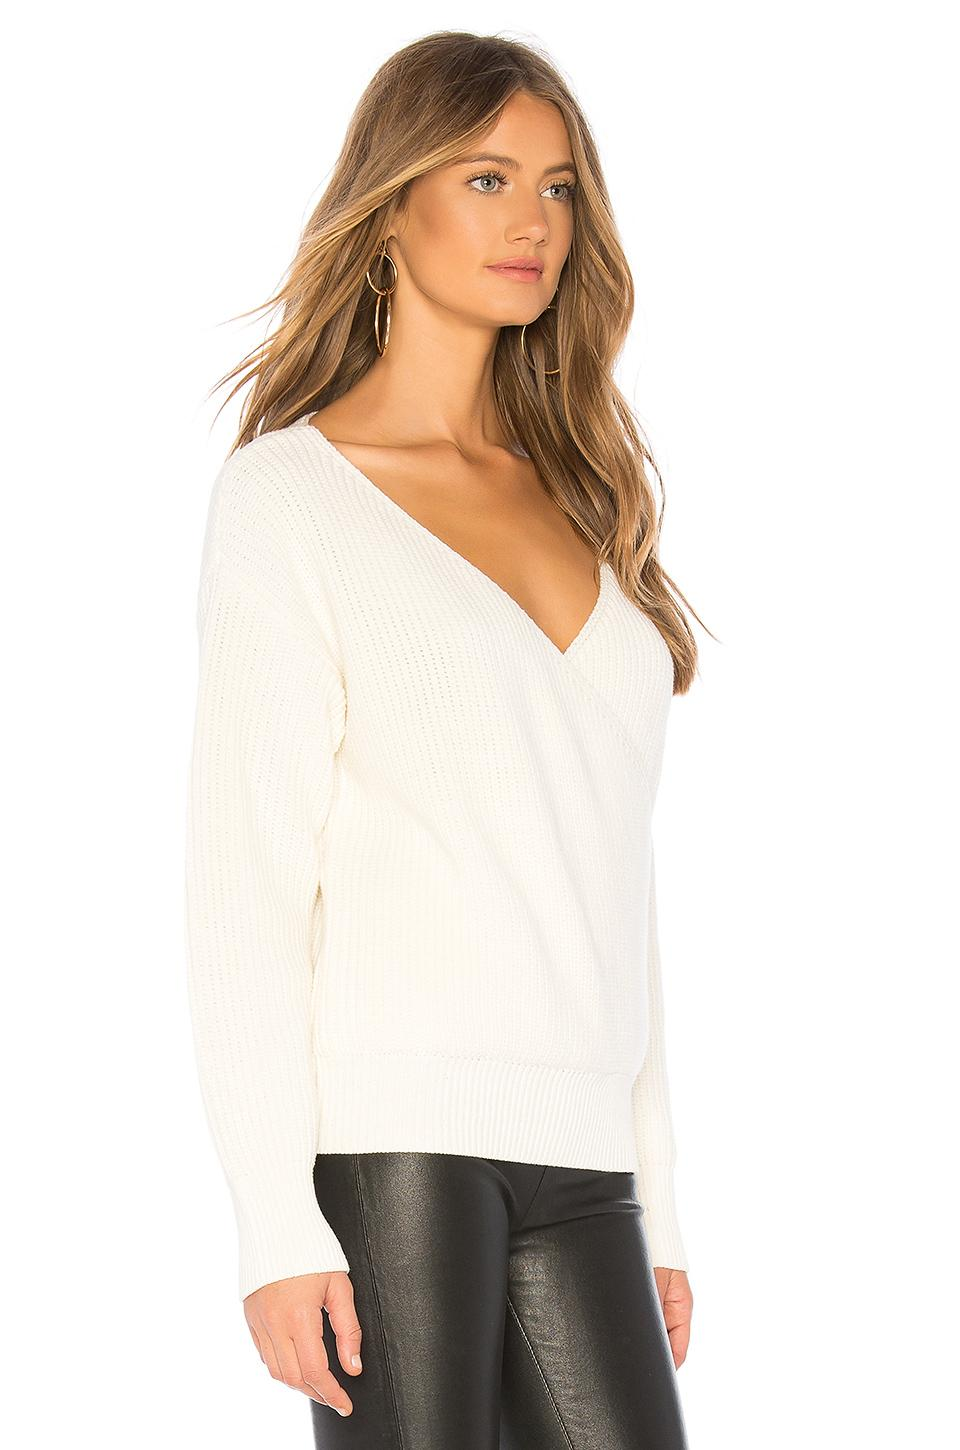 69dced6dfdf25 Lyst - Callahan Agnes Wrap Sweater in White